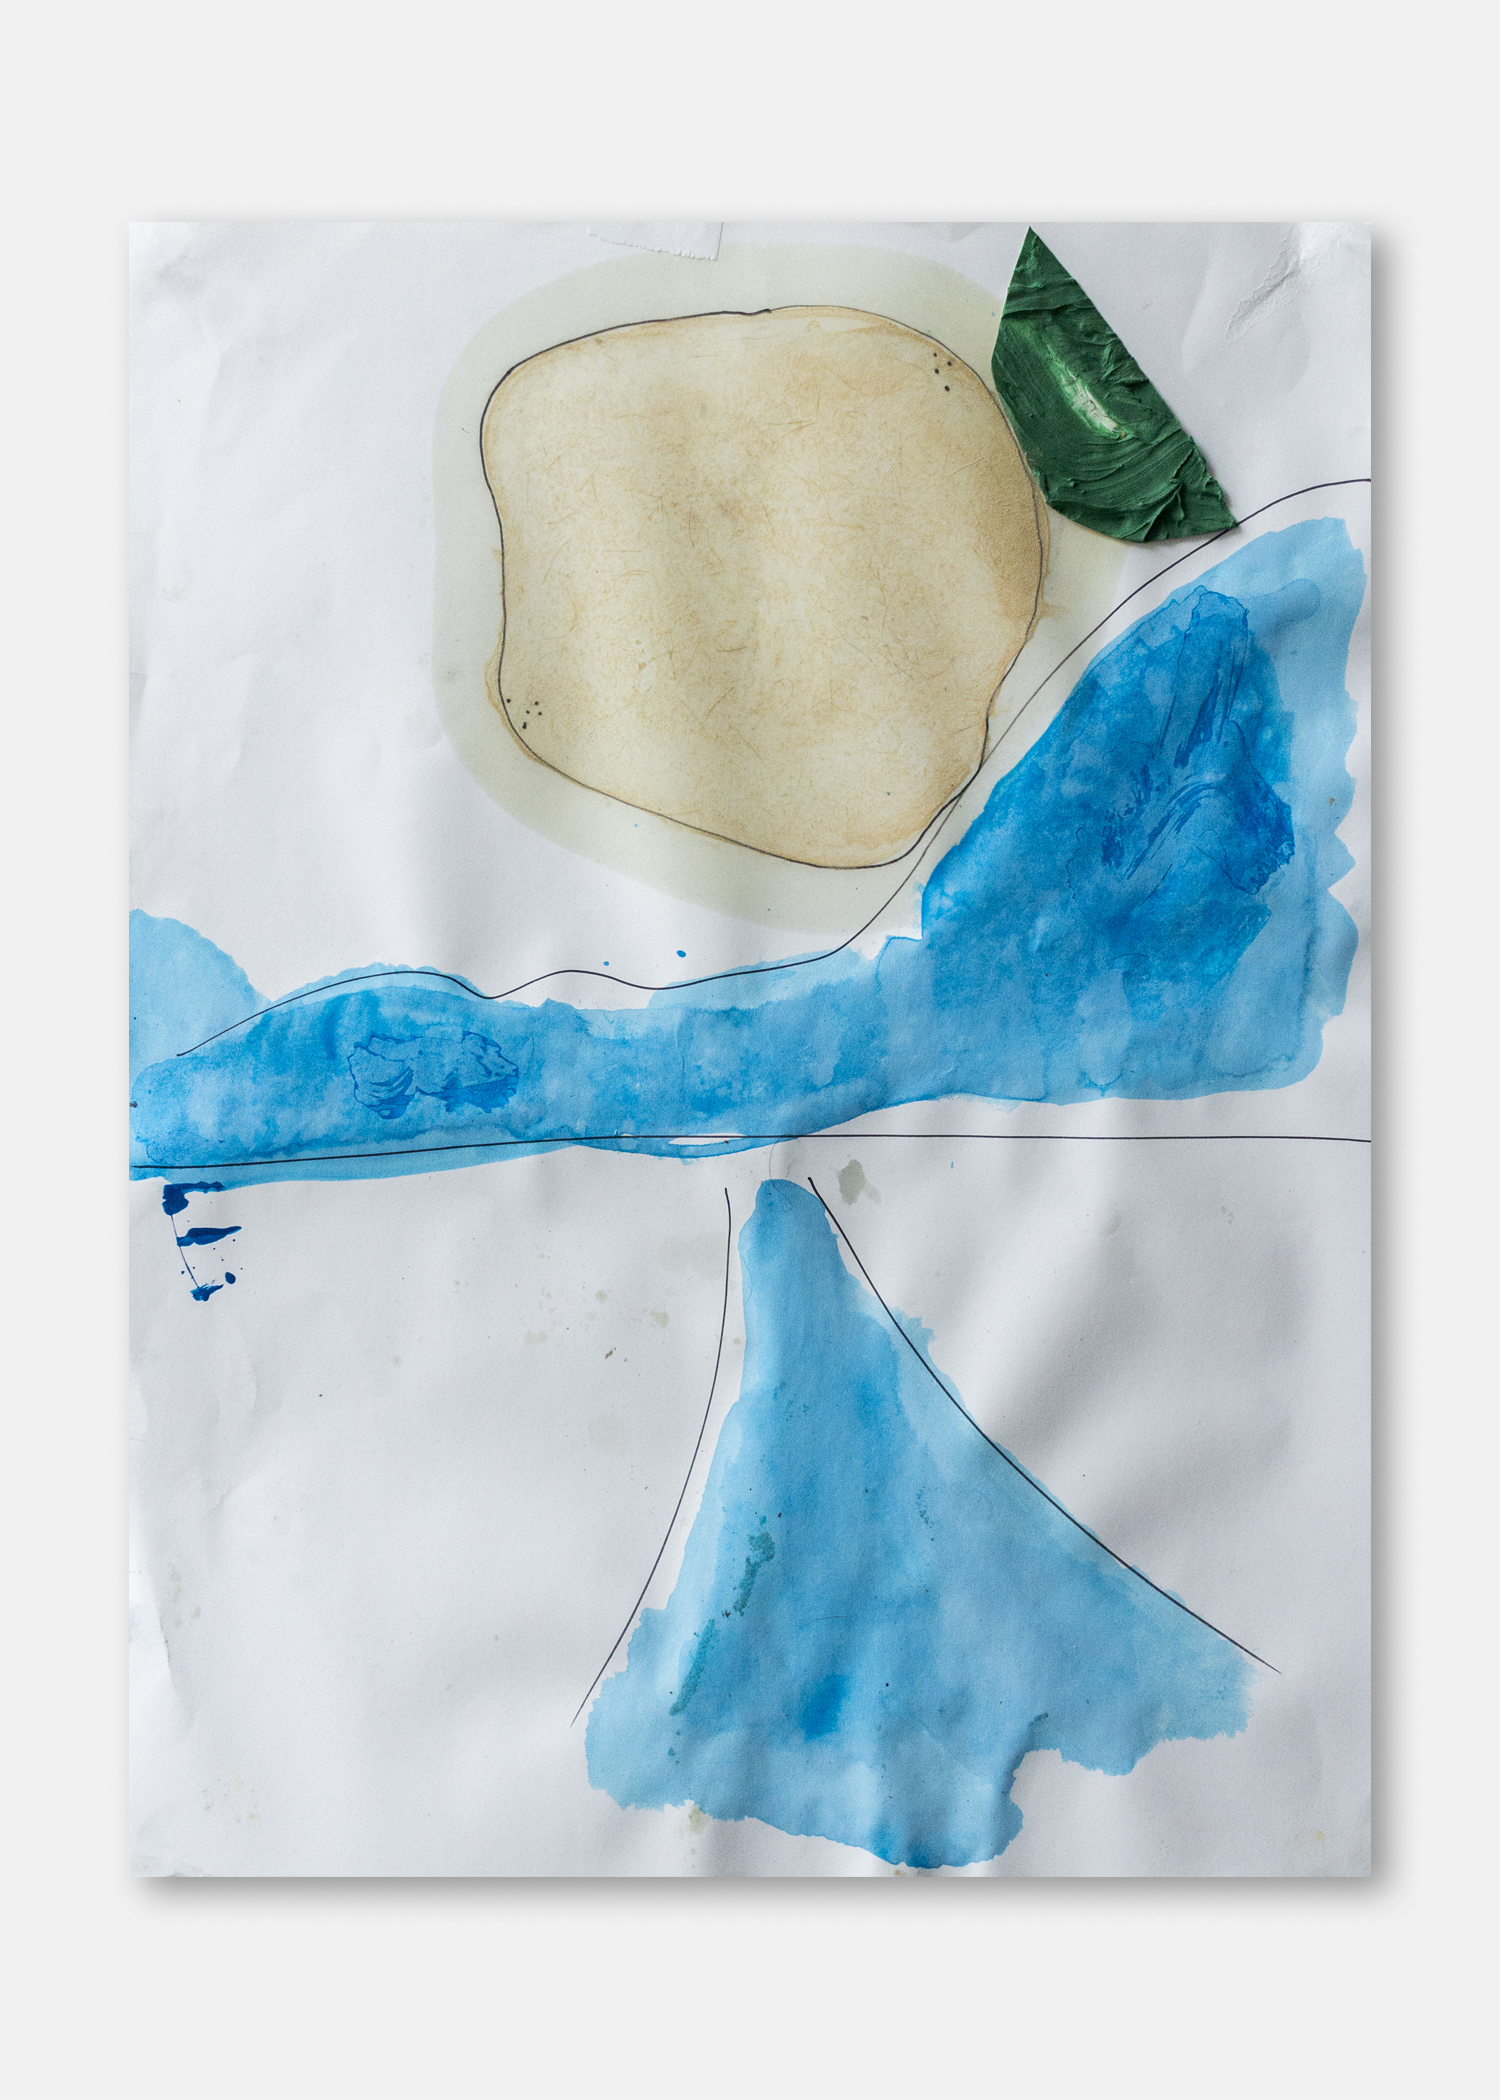 Untitled  Pigment and collaged acrylic on paper  45.5 x 61 cm  24 x 18 in